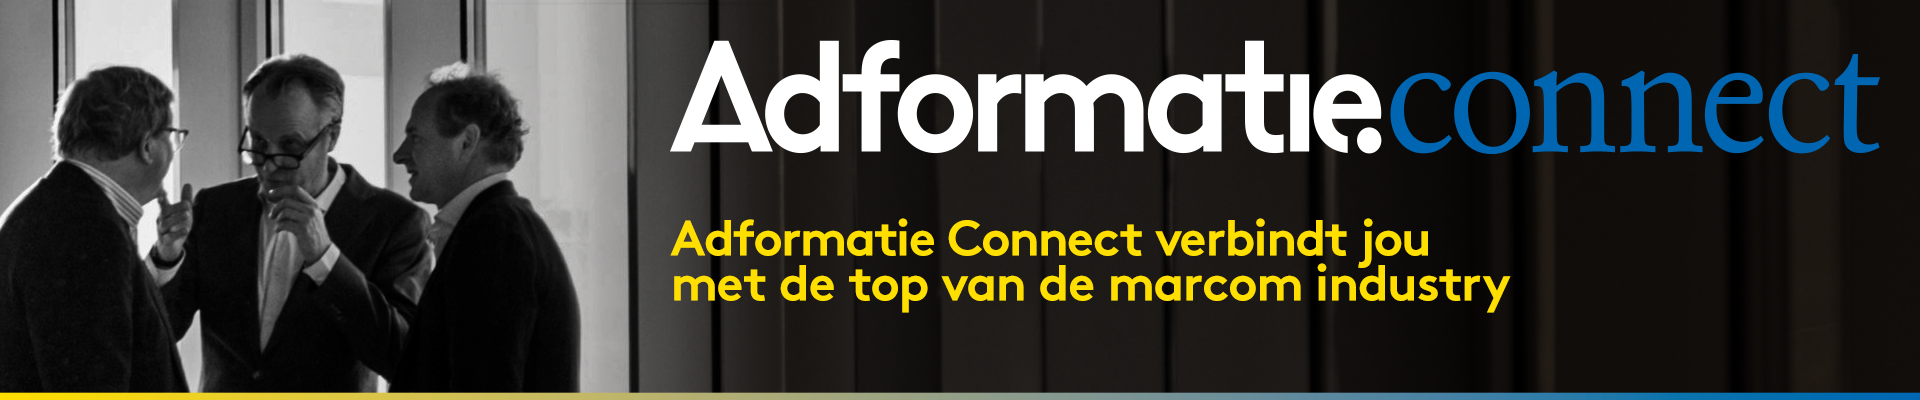 Adformatie Connect 2020